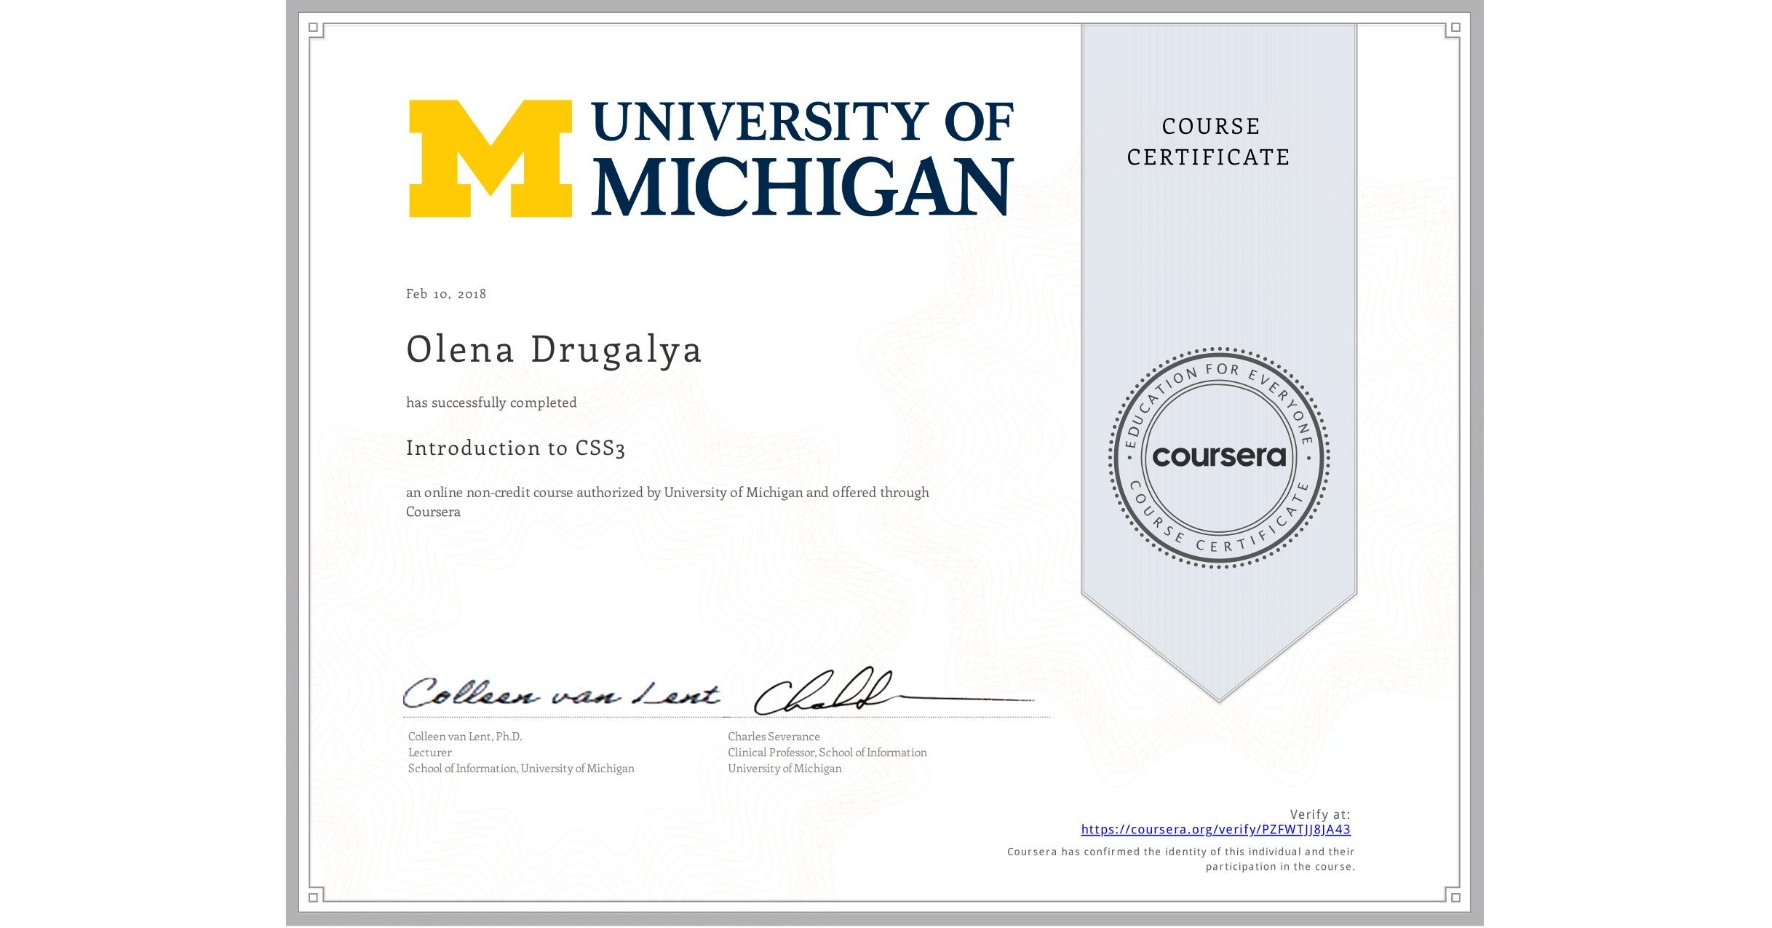 View certificate for Olena Drugalya, Introduction to CSS3, an online non-credit course authorized by University of Michigan and offered through Coursera